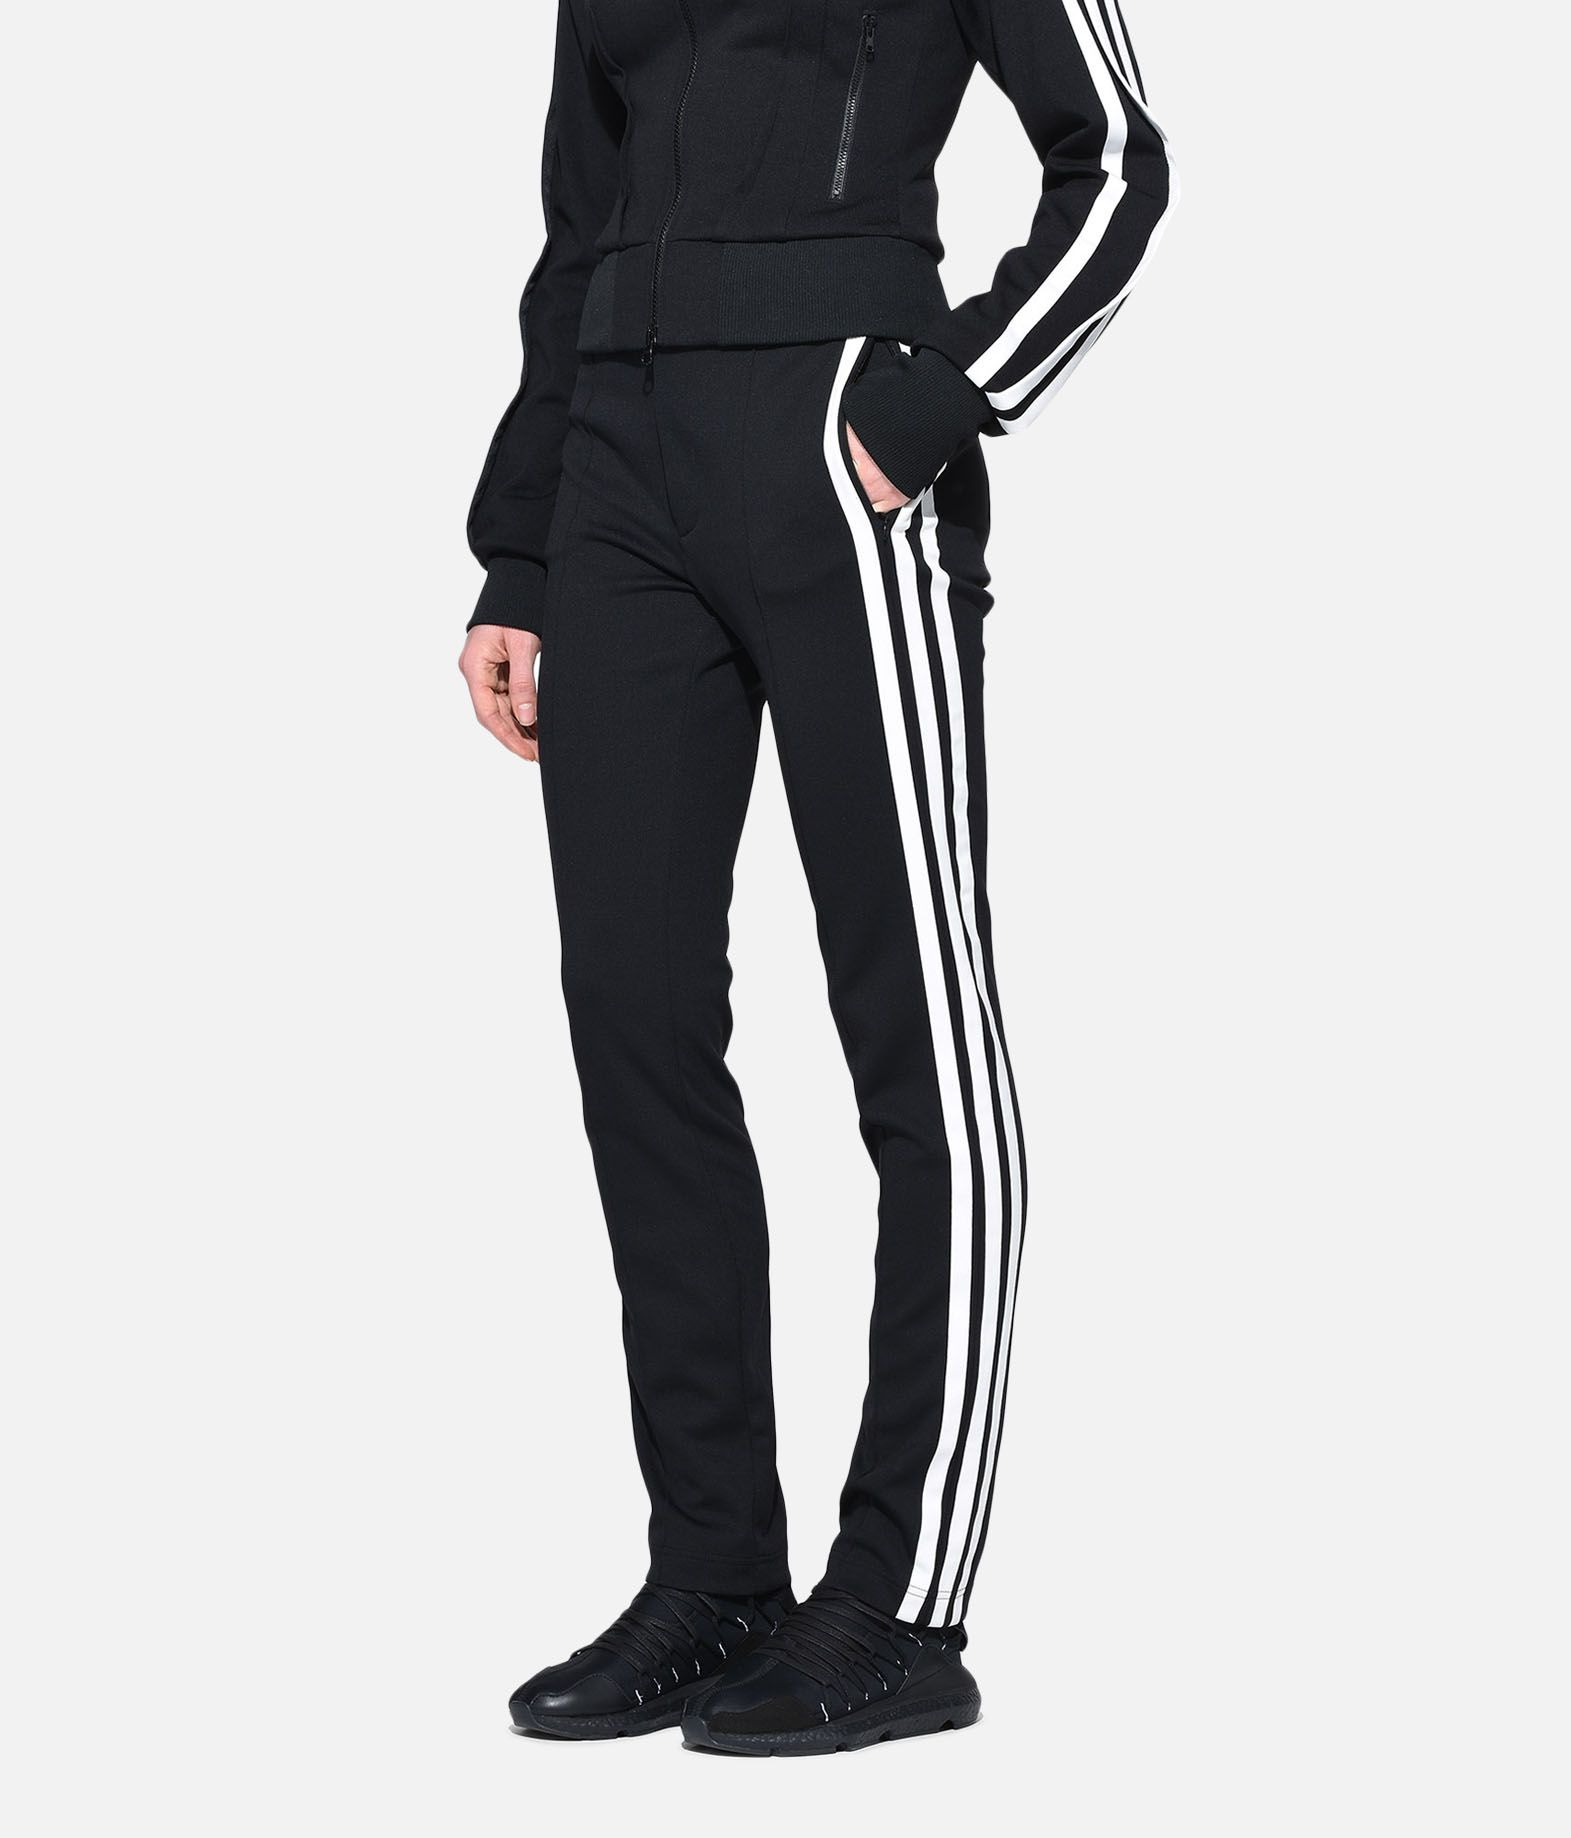 Y-3 Y-3 High Waist Matte Track Pants Casual pants Woman e